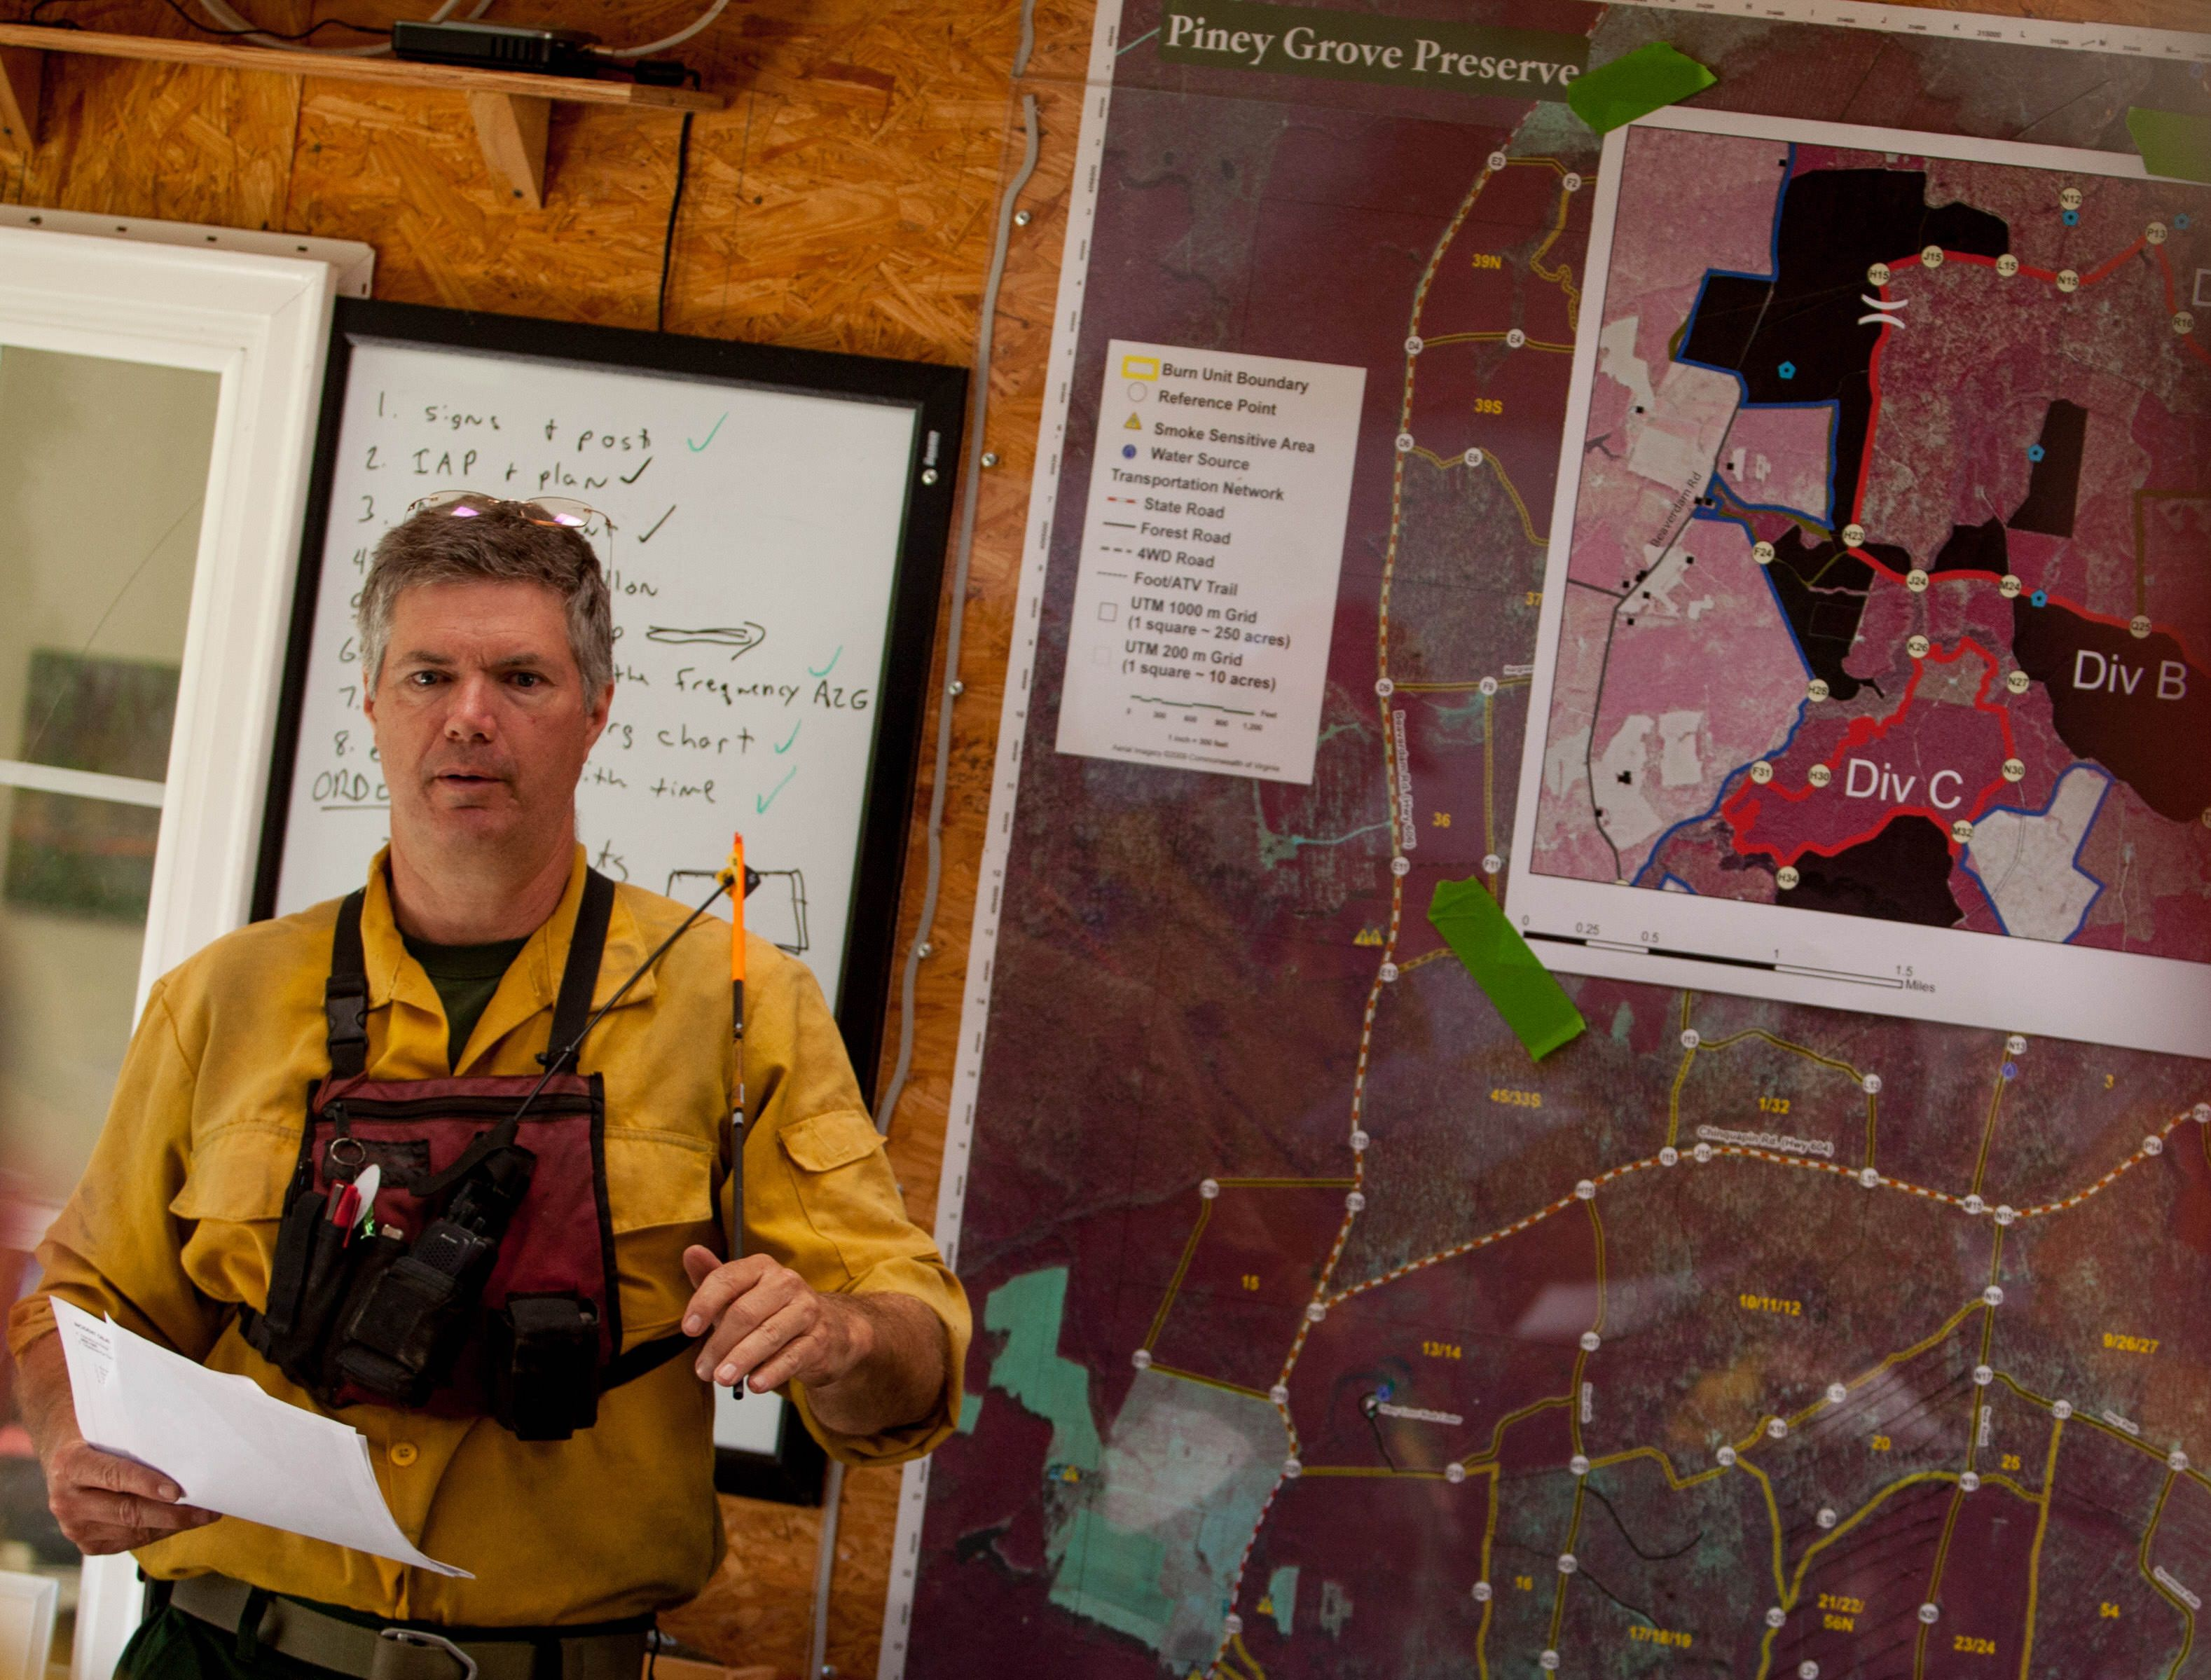 Preserve manager Bobby Clontz leads the briefing before the start of a controlled burn. A man wearing yellow fire gear stands in front of a large map showing burn areas within the preserve.